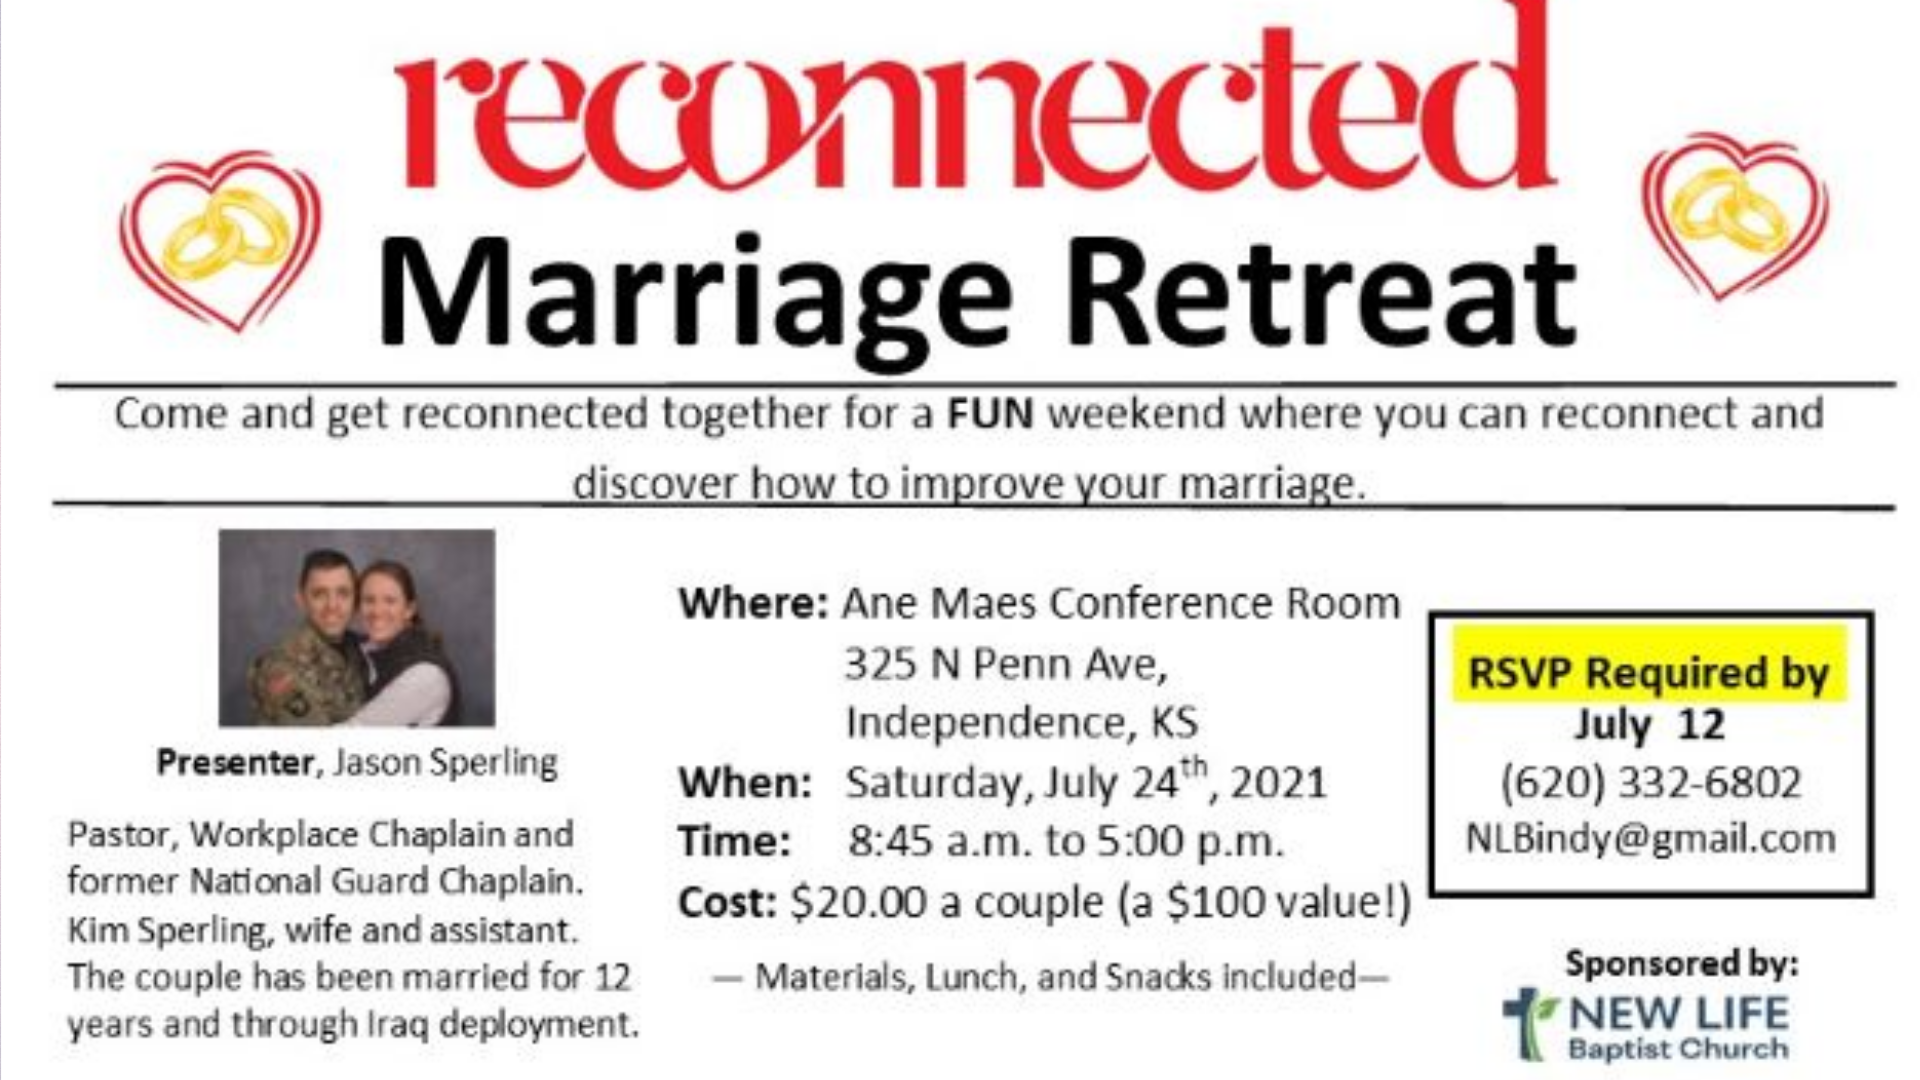 Reconnected Marriage Retreat